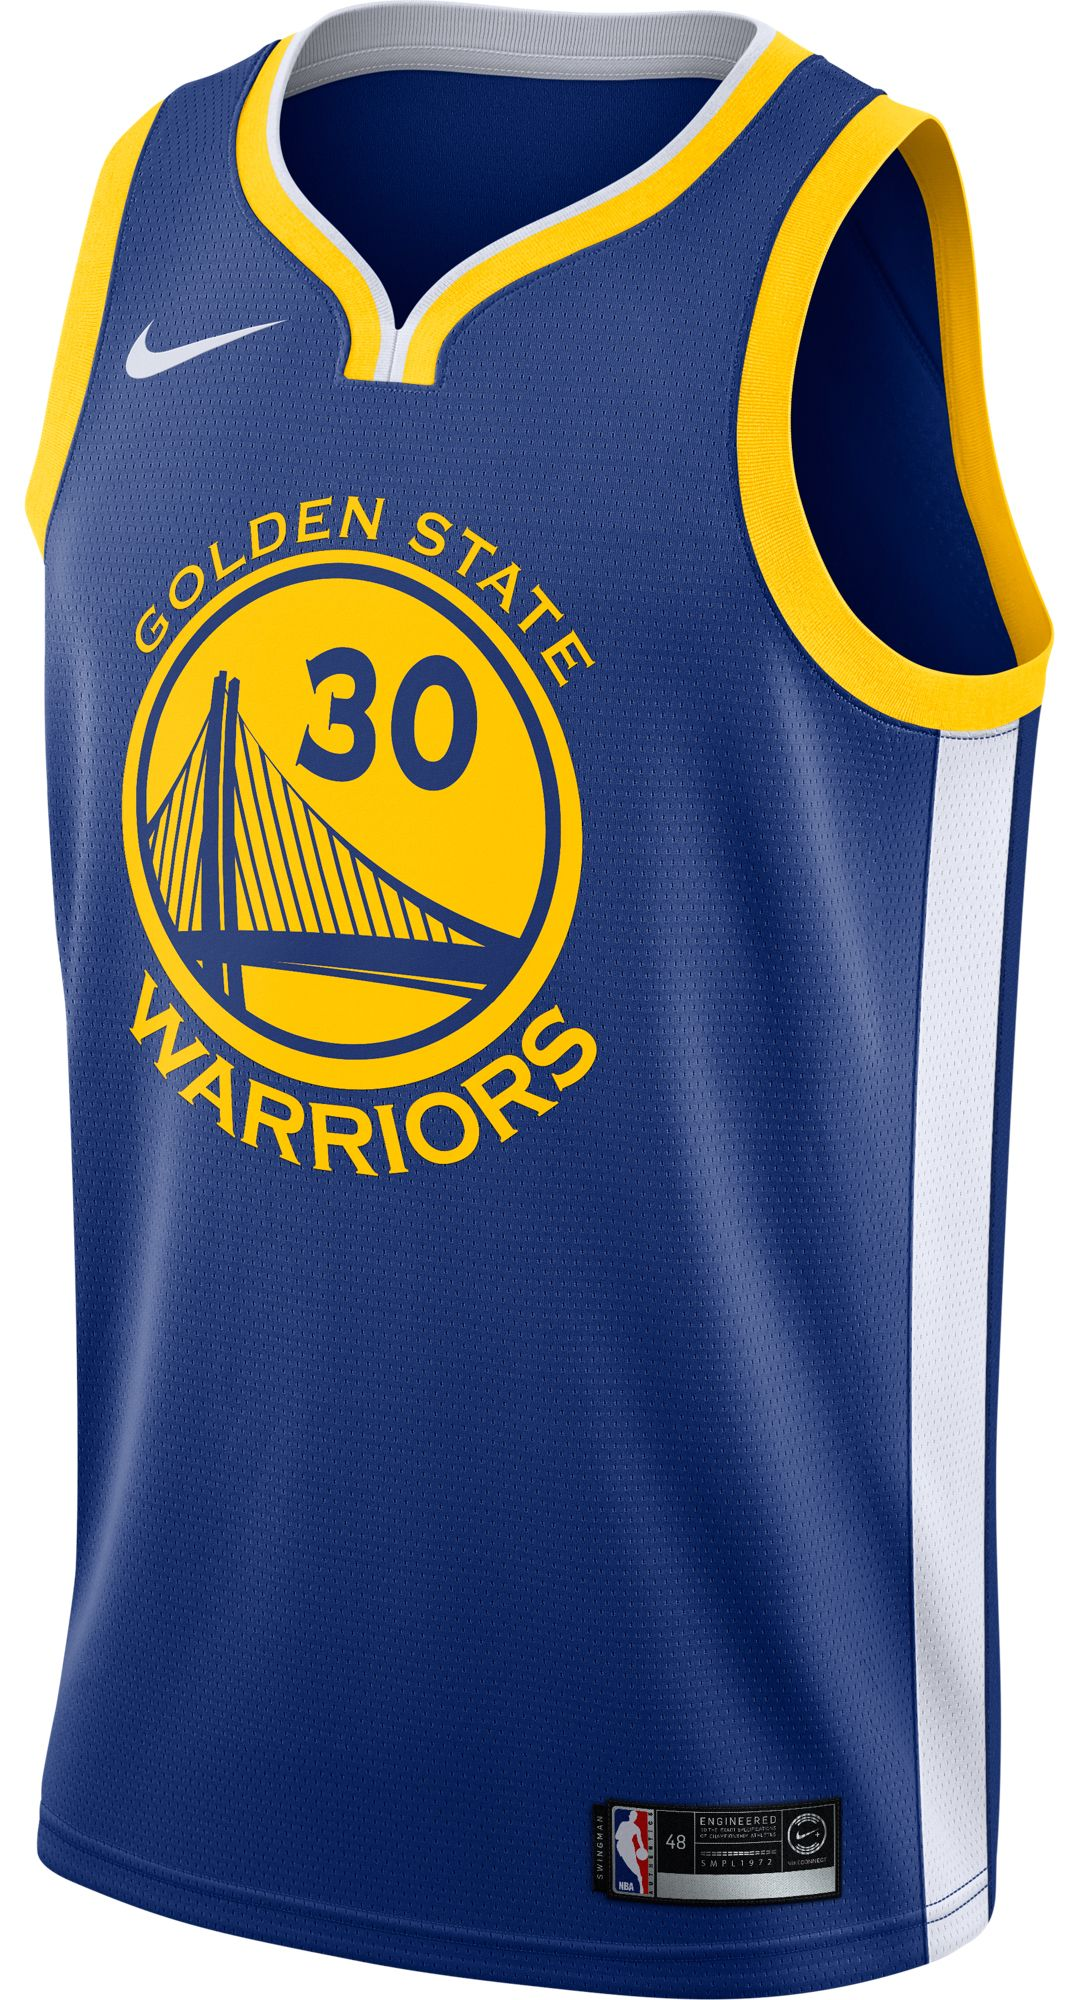 new style 846d1 5c301 Nike Men's Golden State Warriors Stephen Curry #30 Royal Dri-FIT Swingman  Jersey